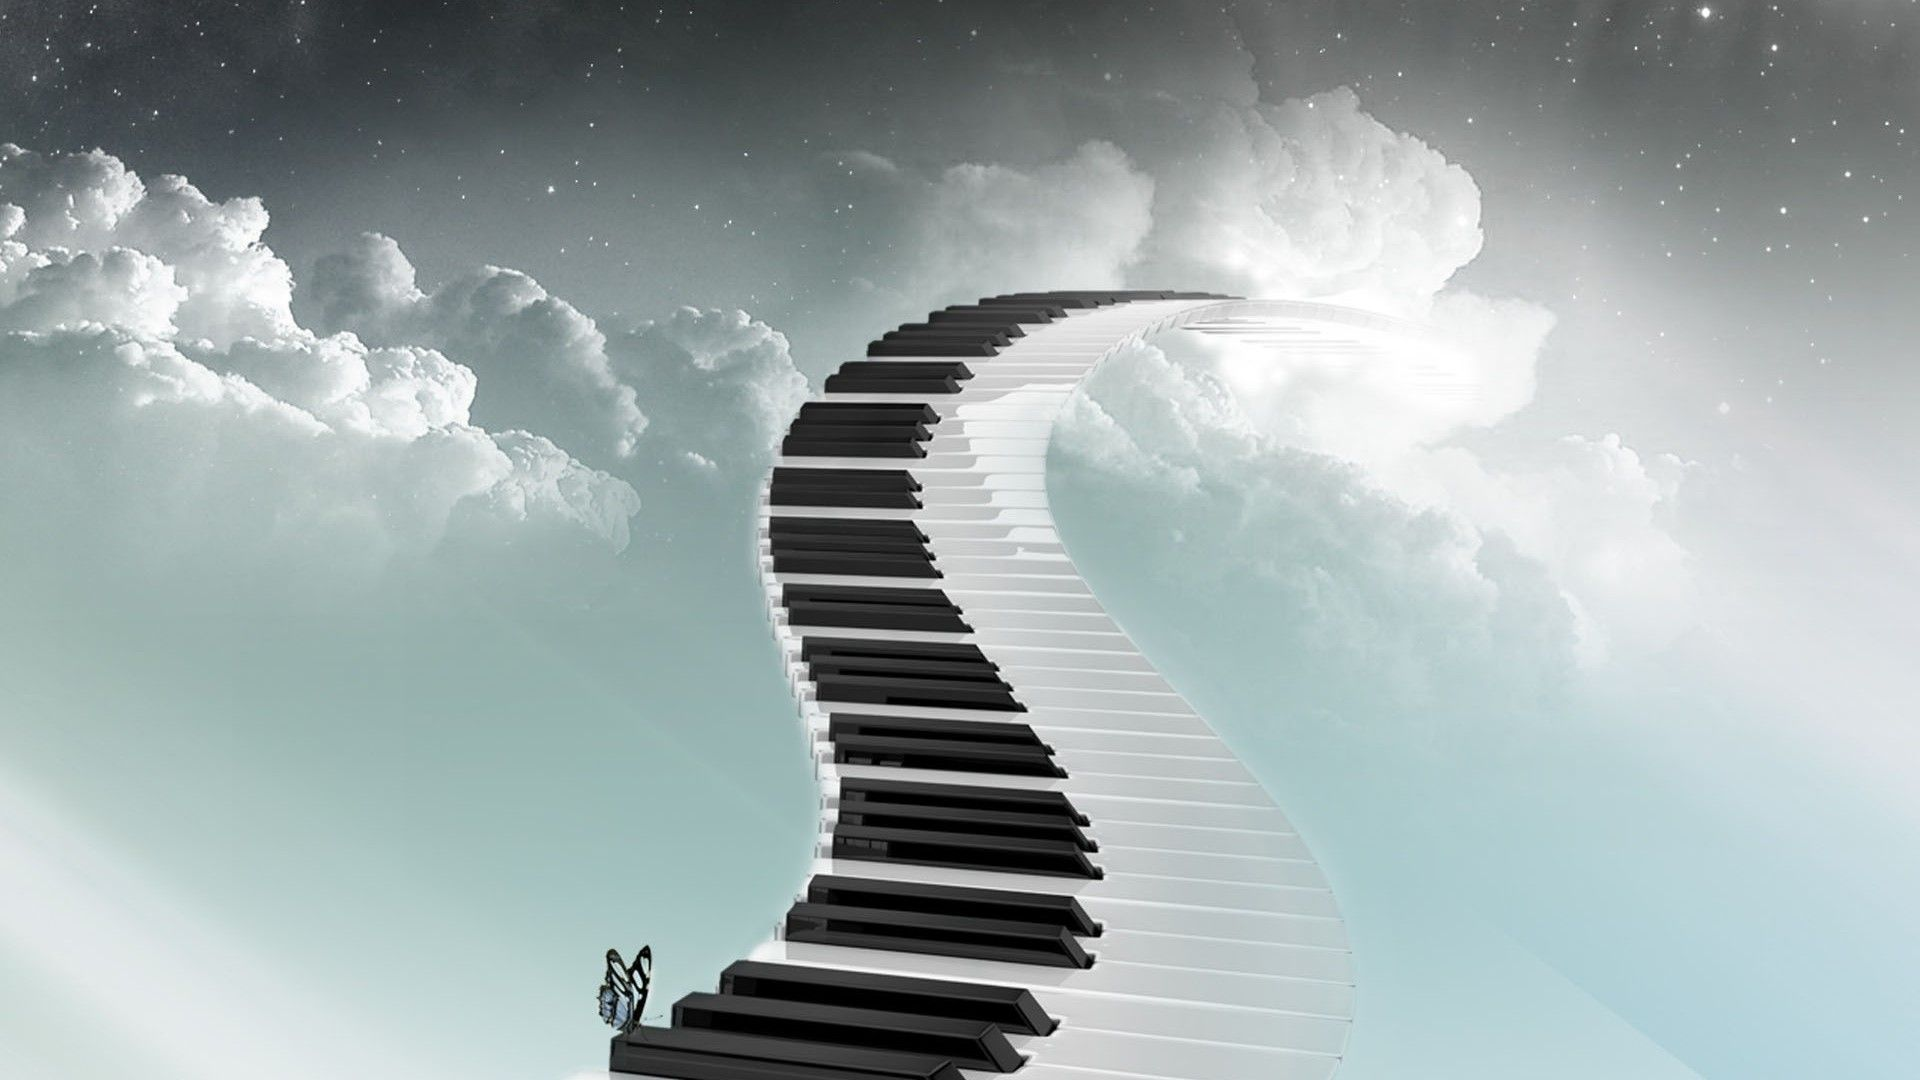 Piano Music Wallpaper: Sky-road-piano-butterfly-staircase-music-1080x1920